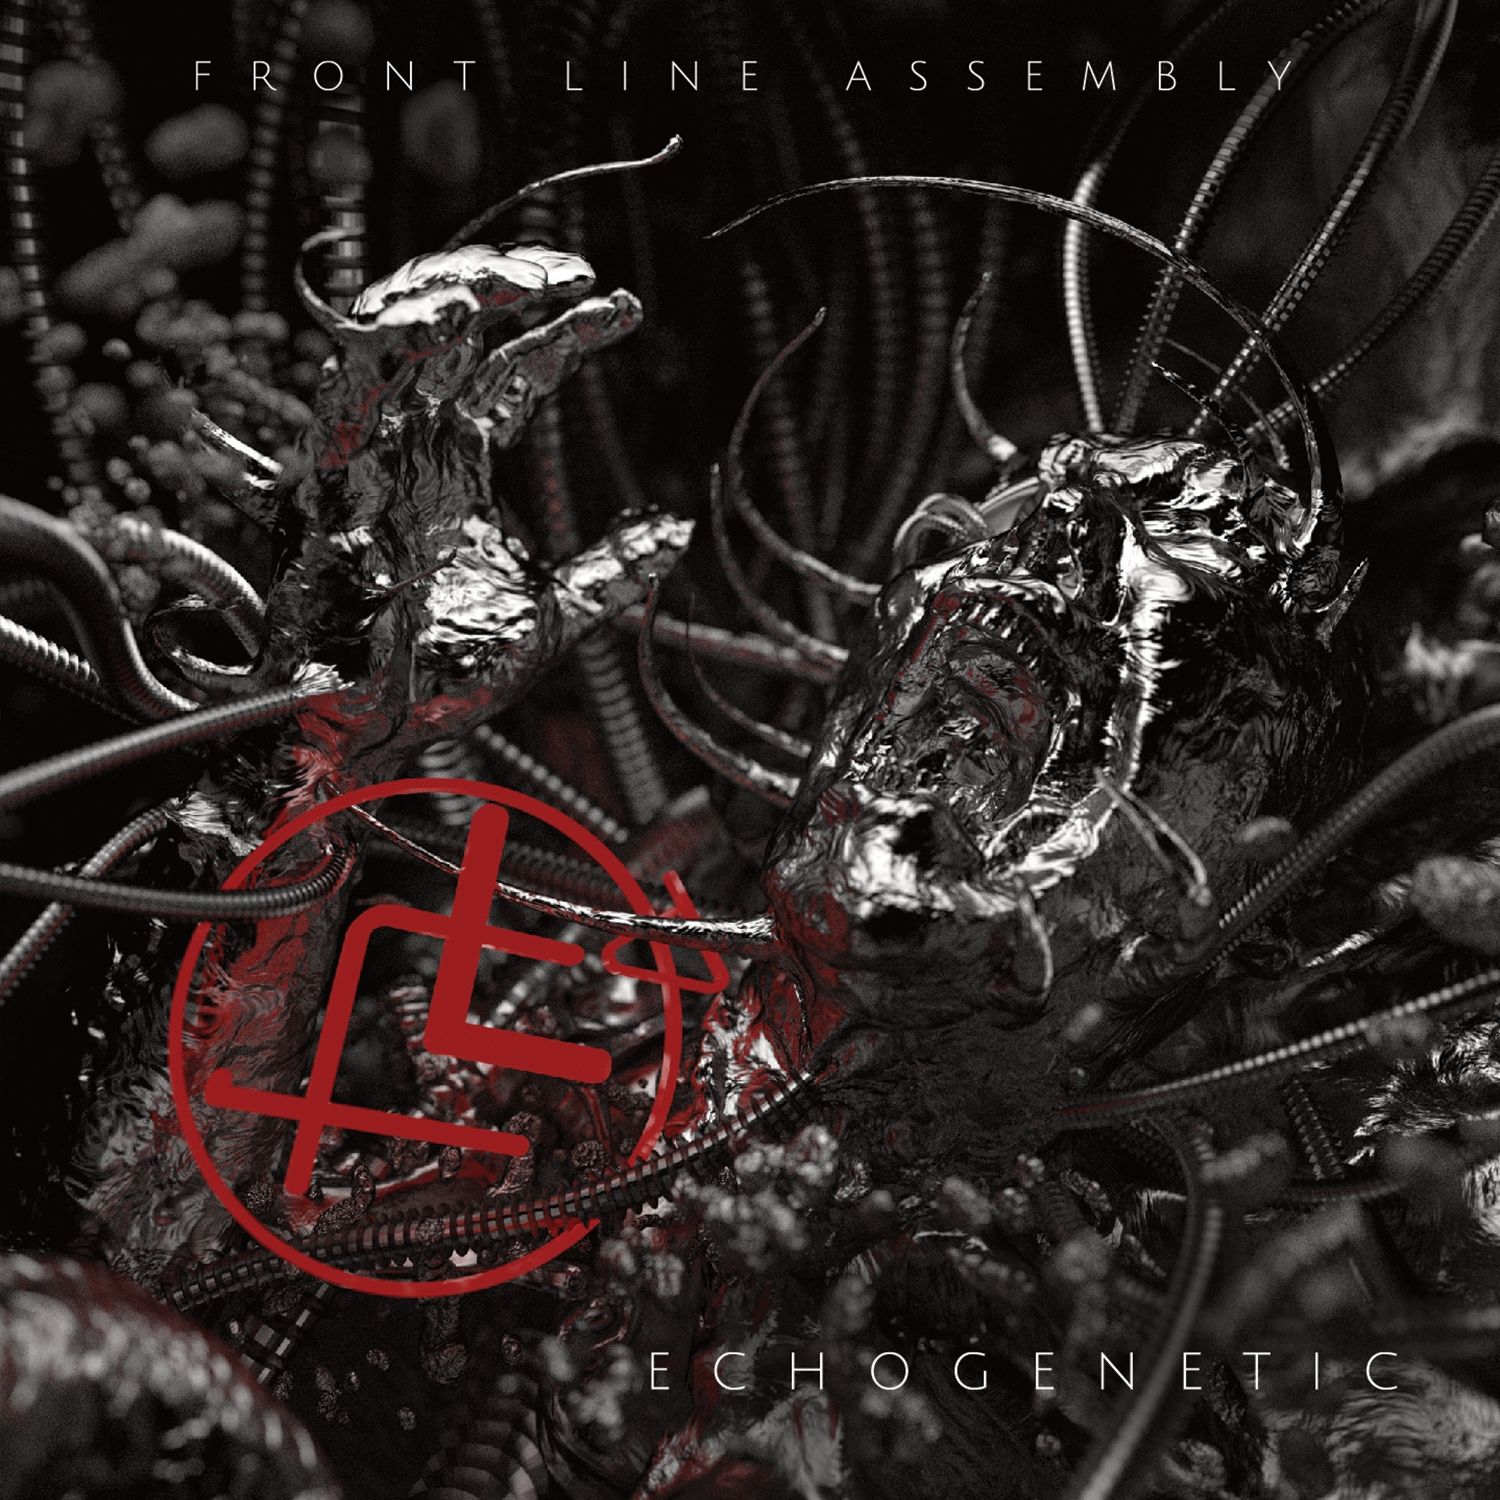 Imagem do álbum Echogenetic do(a) artista Front Line Assembly